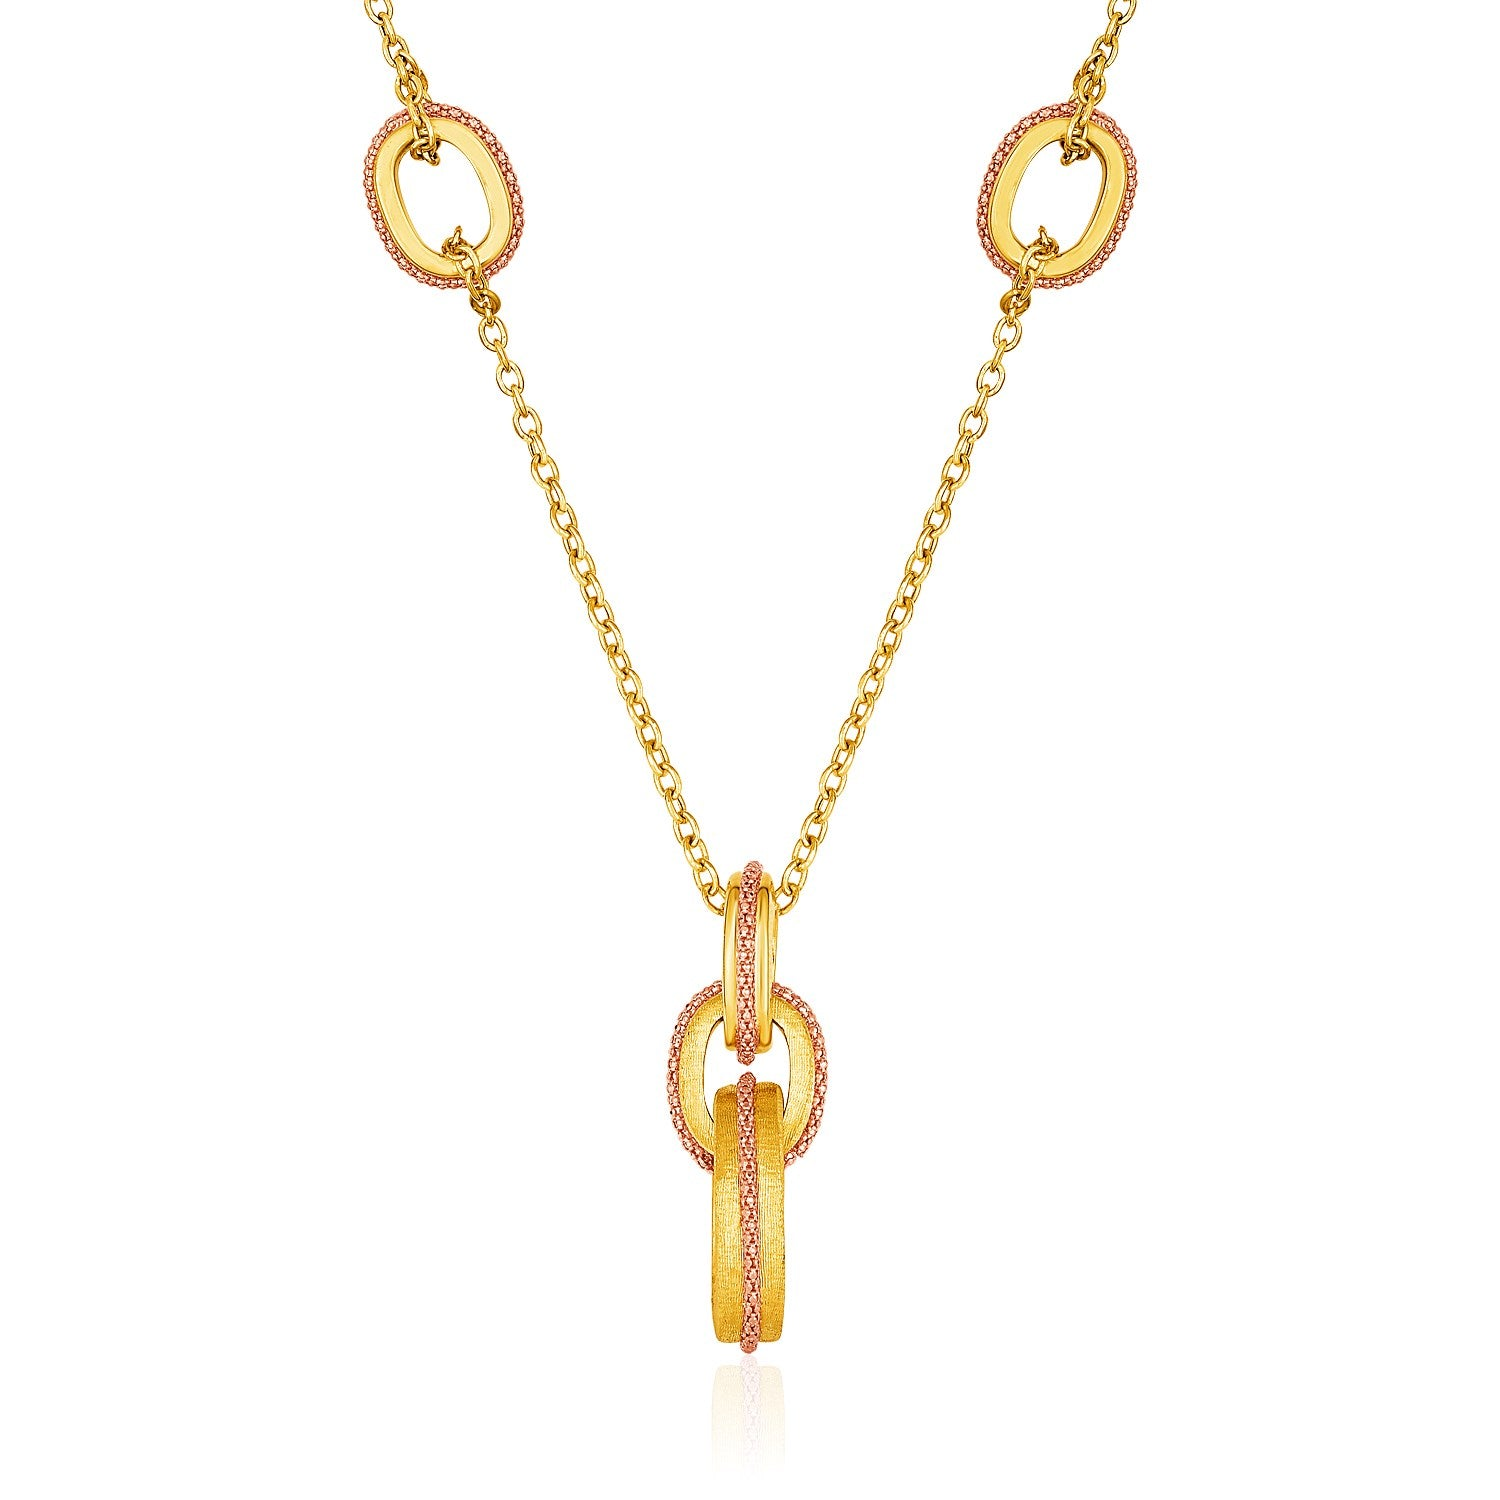 14K Two-Tone Yellow and Rose Gold Link and Chain Necklace